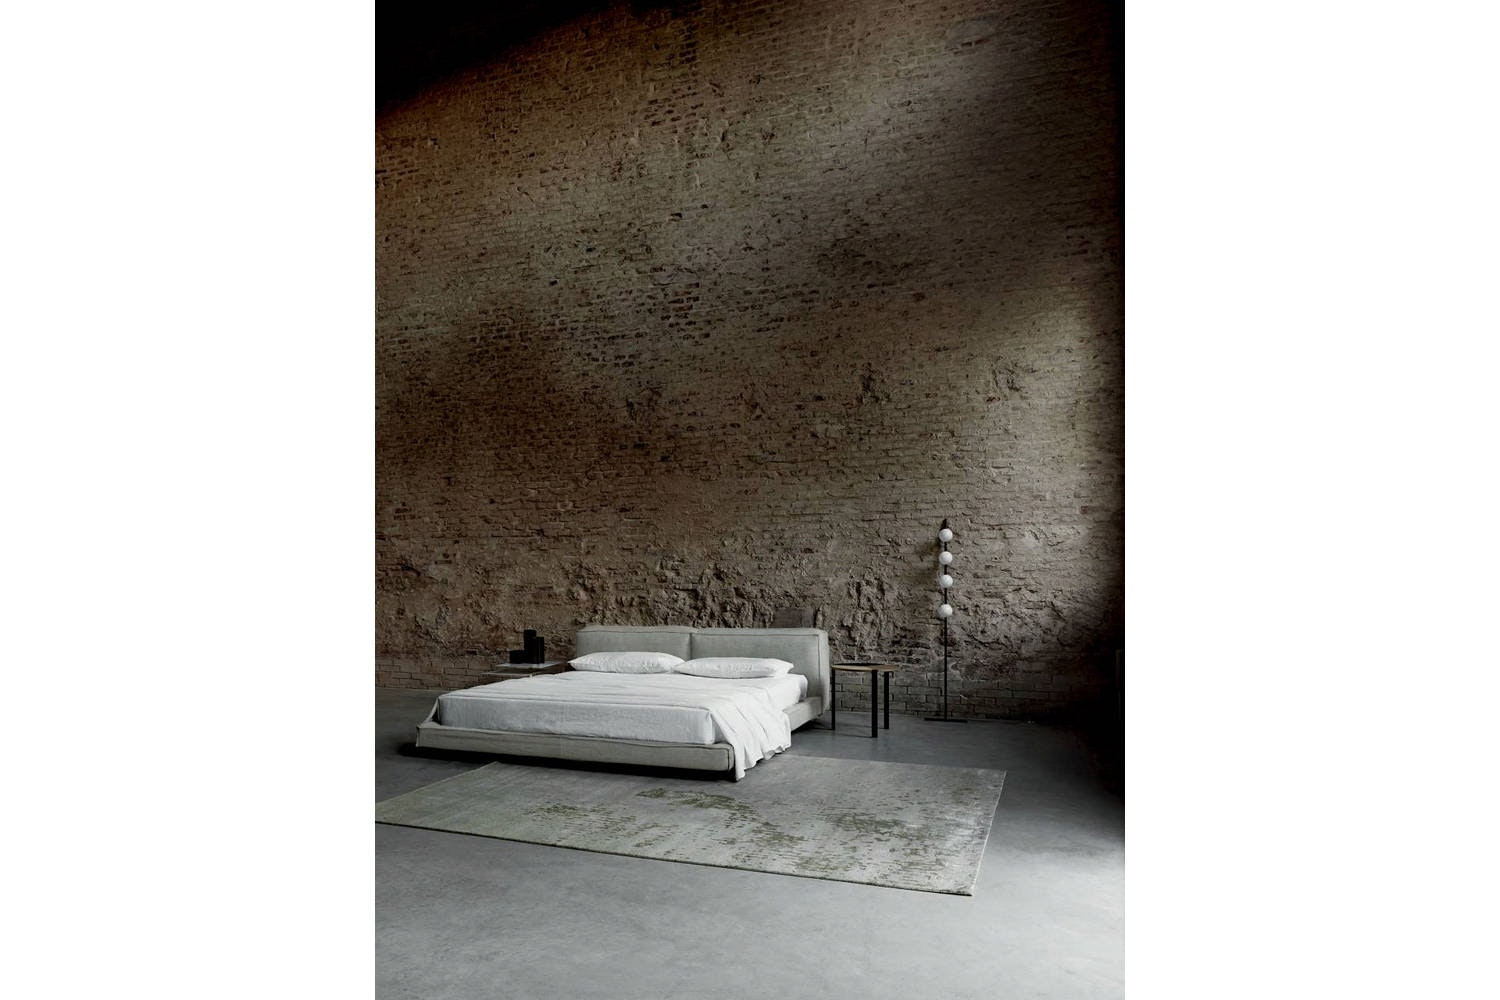 Neowall Bed by Piero Lissoni for Living Divani